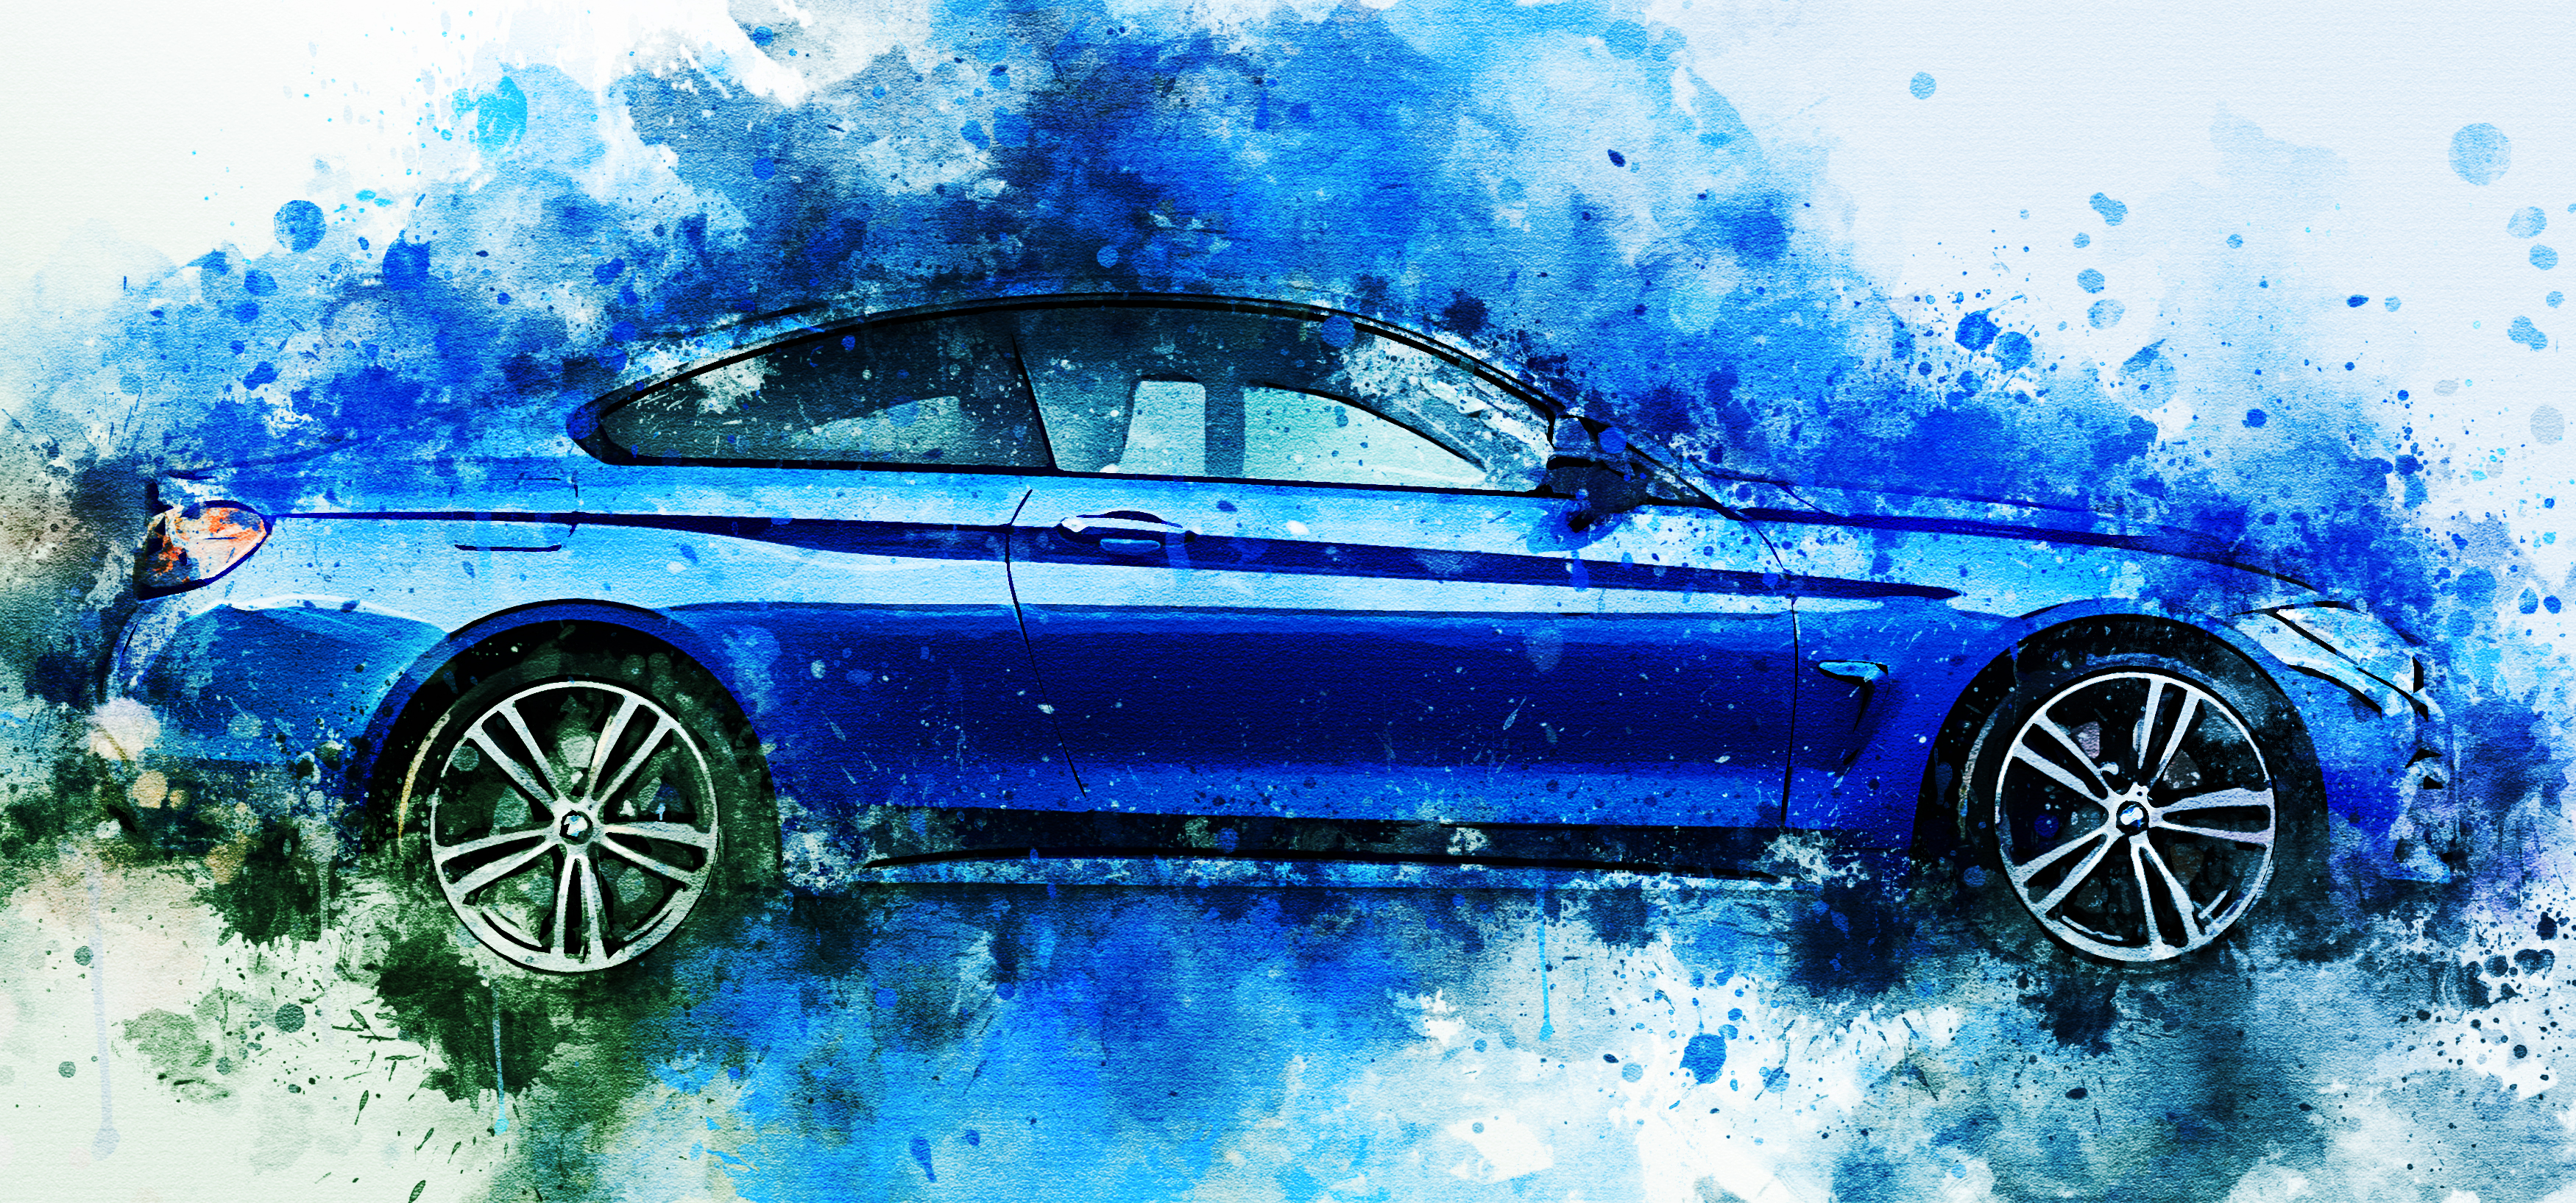 BMW - Watercolor